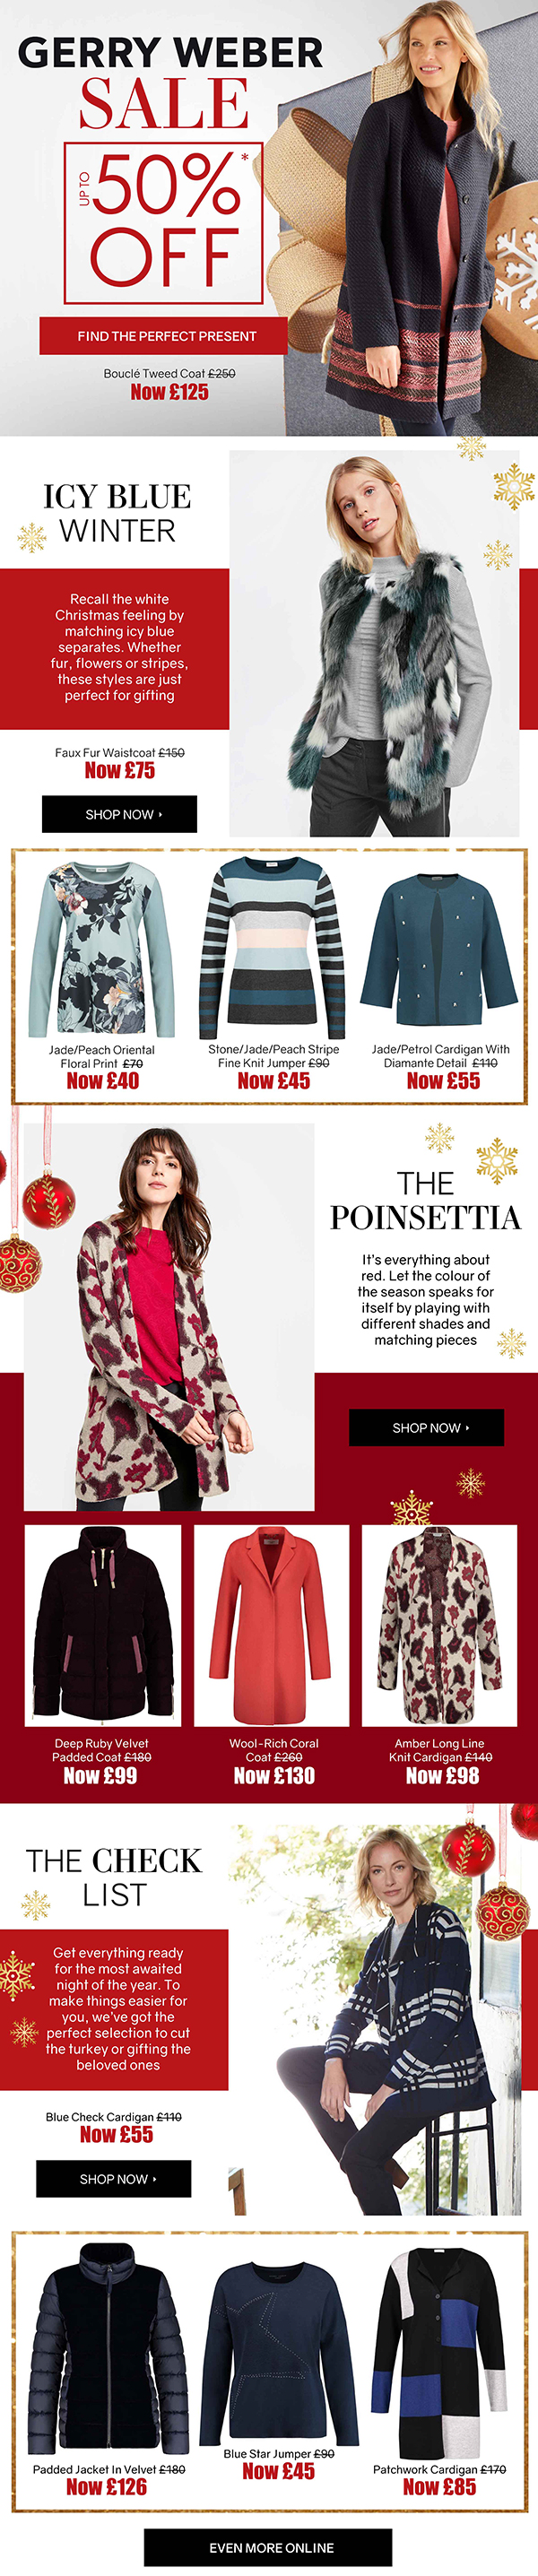 b31e08a920 Chesca Direct  SALE up to 50% OFF - Gerry Weber Christmas Gifts ...